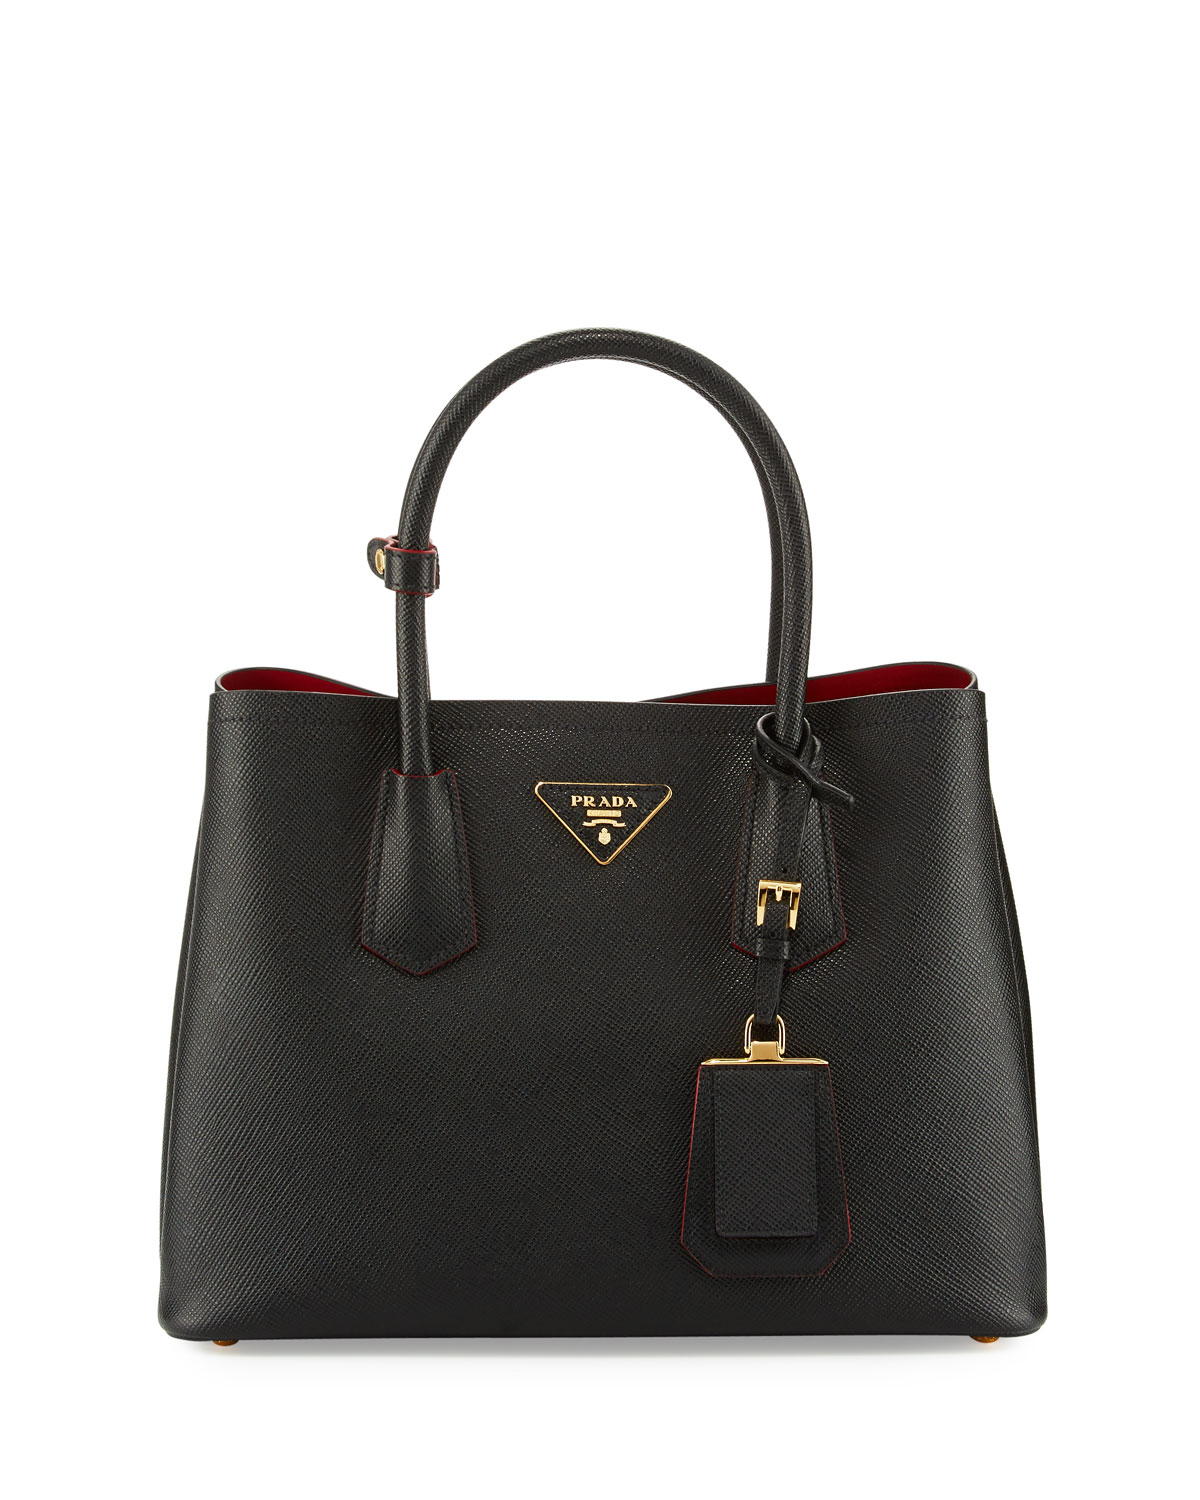 Prada Saffiano Cuir Double Small Tote Bag  1766fb2d5e922